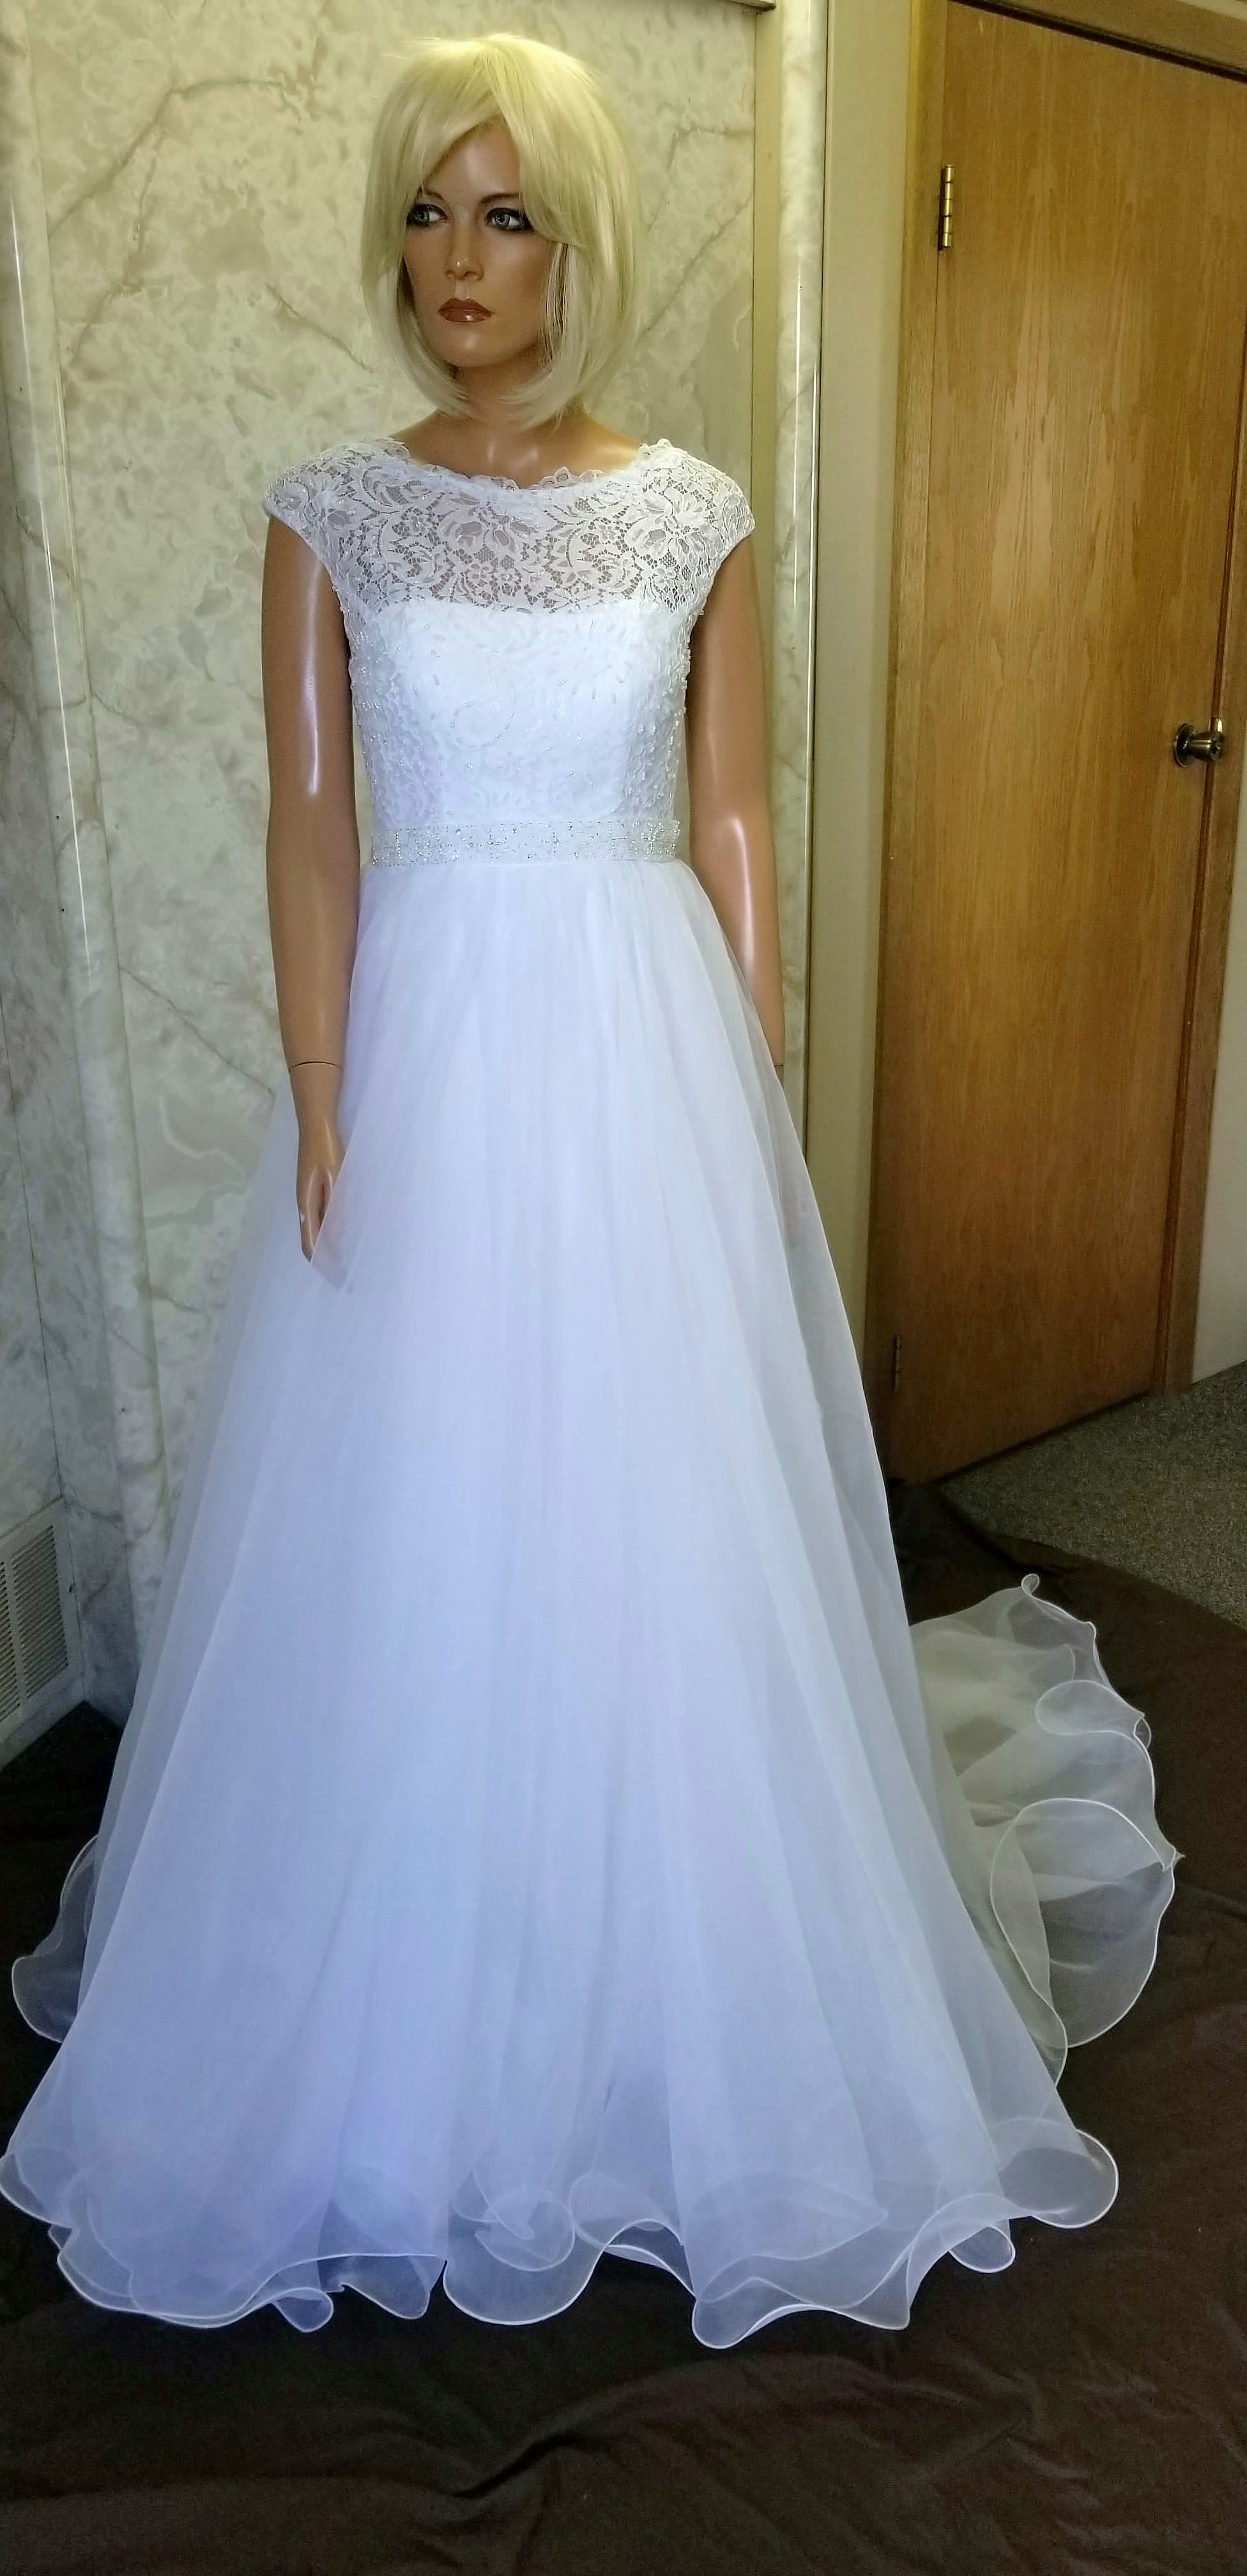 white boat neck wedding dress